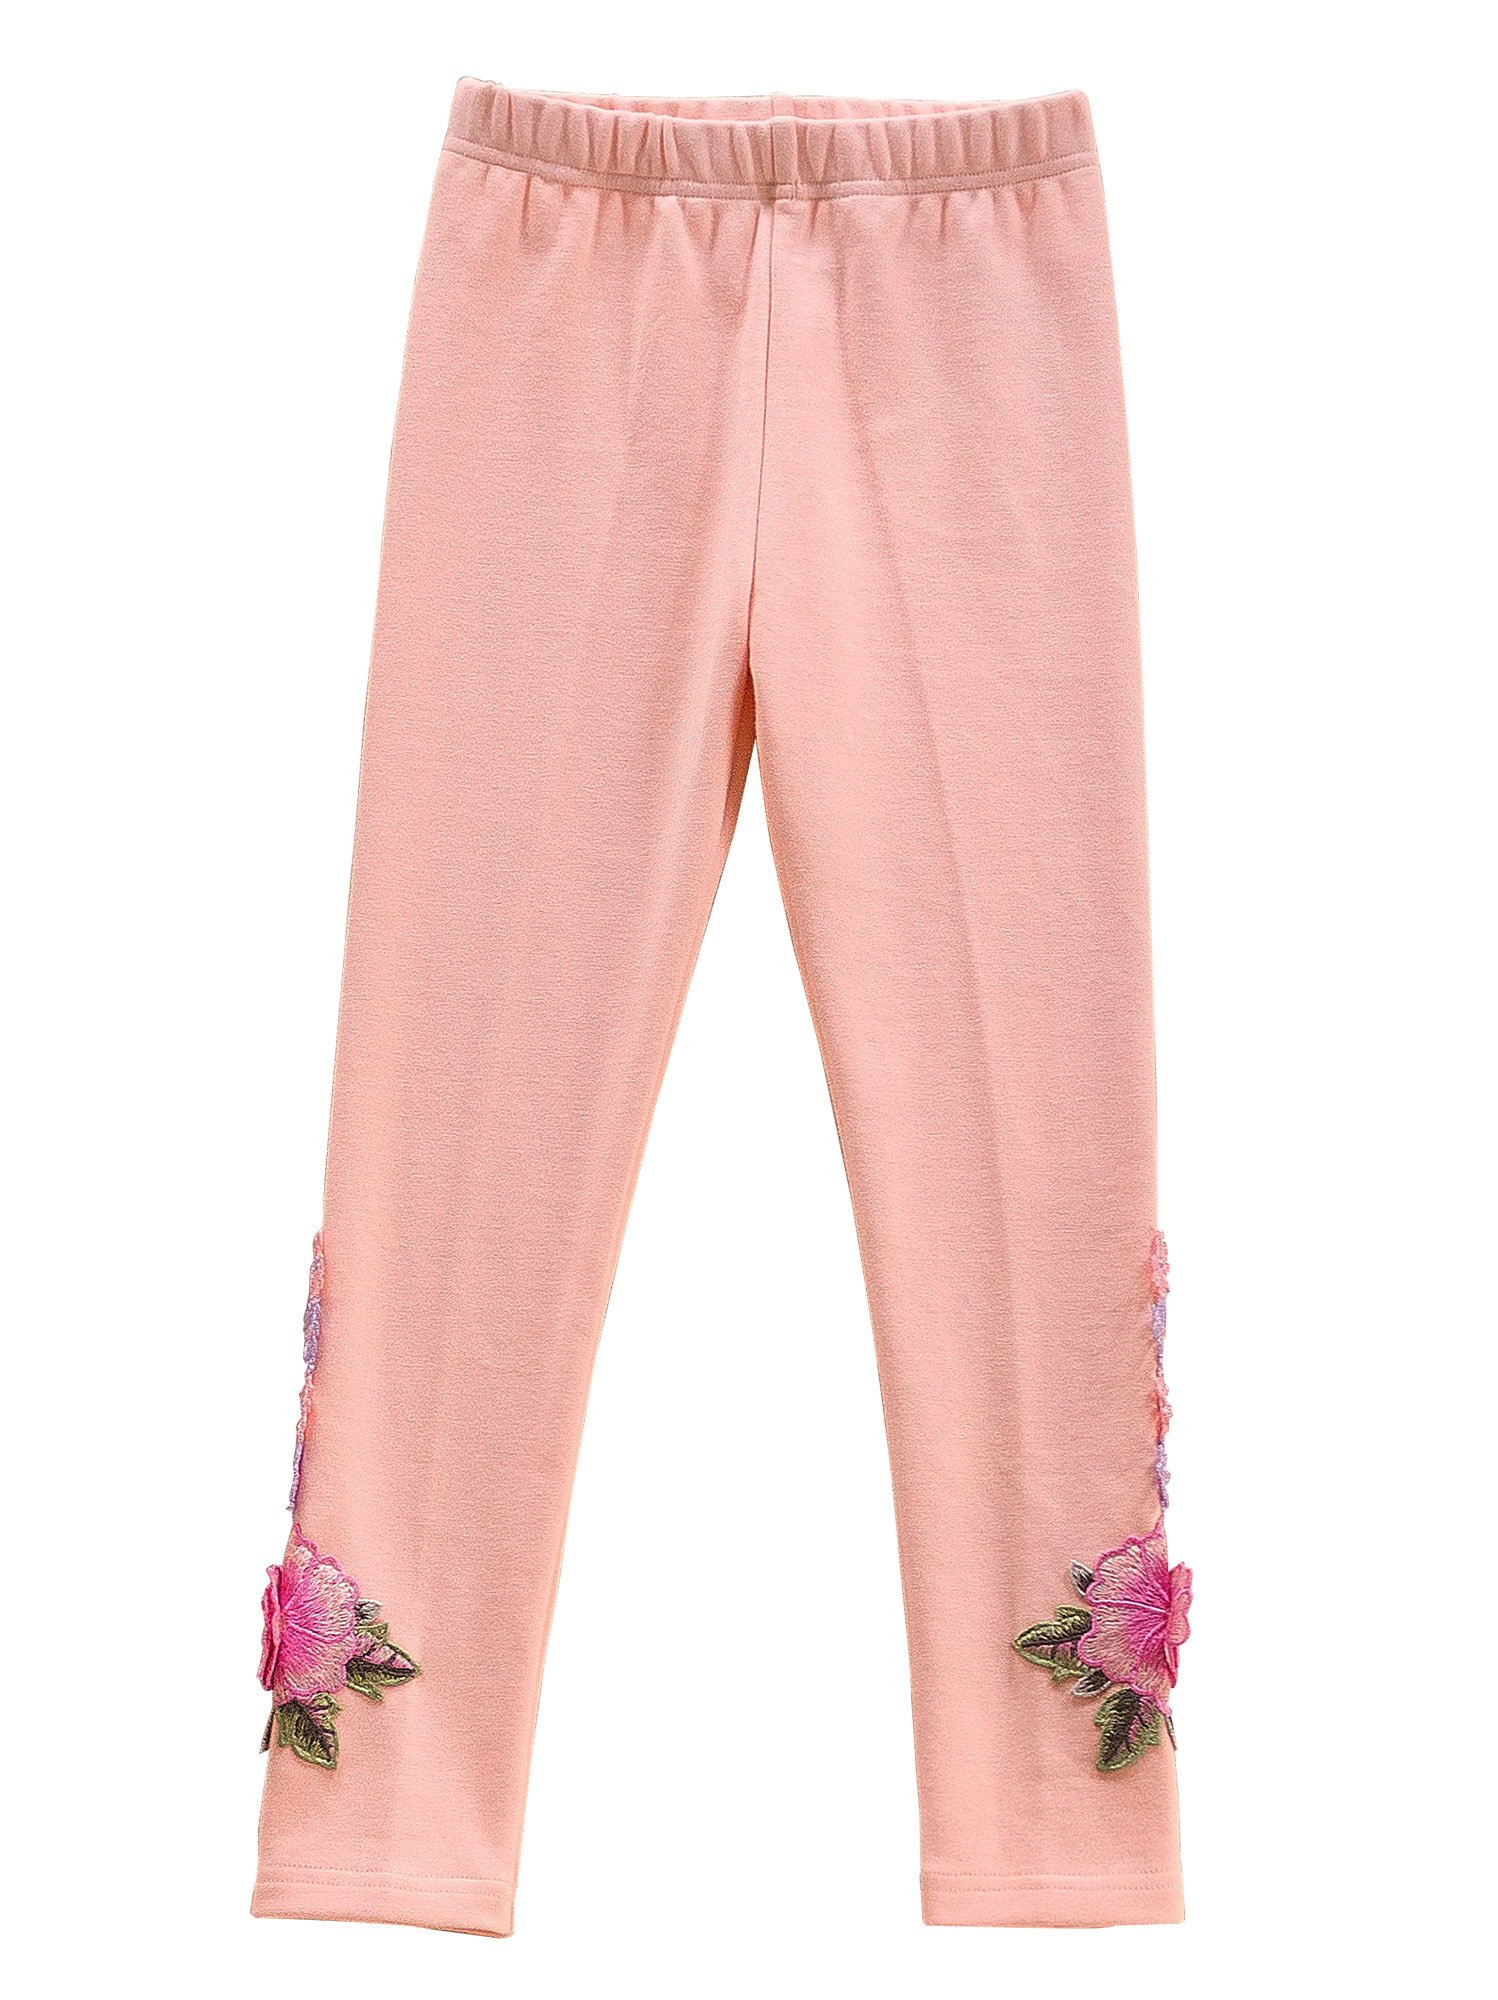 Ipuang Rose Flower Girls' Cotton Leggings for School or Play Pink 4